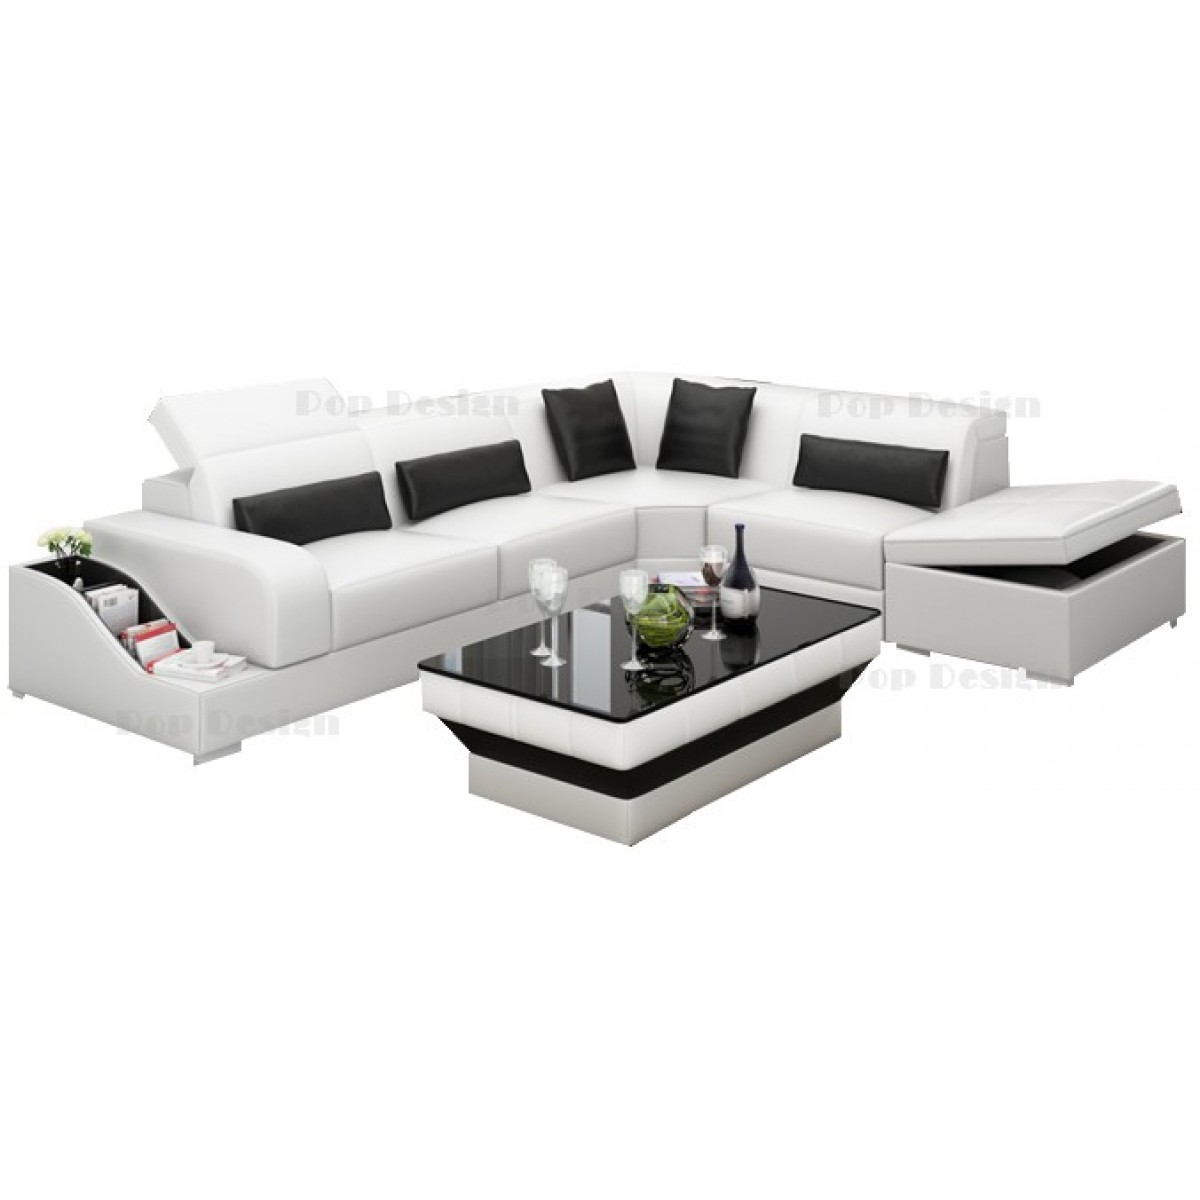 grand canap d 39 angle en cuir jazz avec coffre de rangement. Black Bedroom Furniture Sets. Home Design Ideas